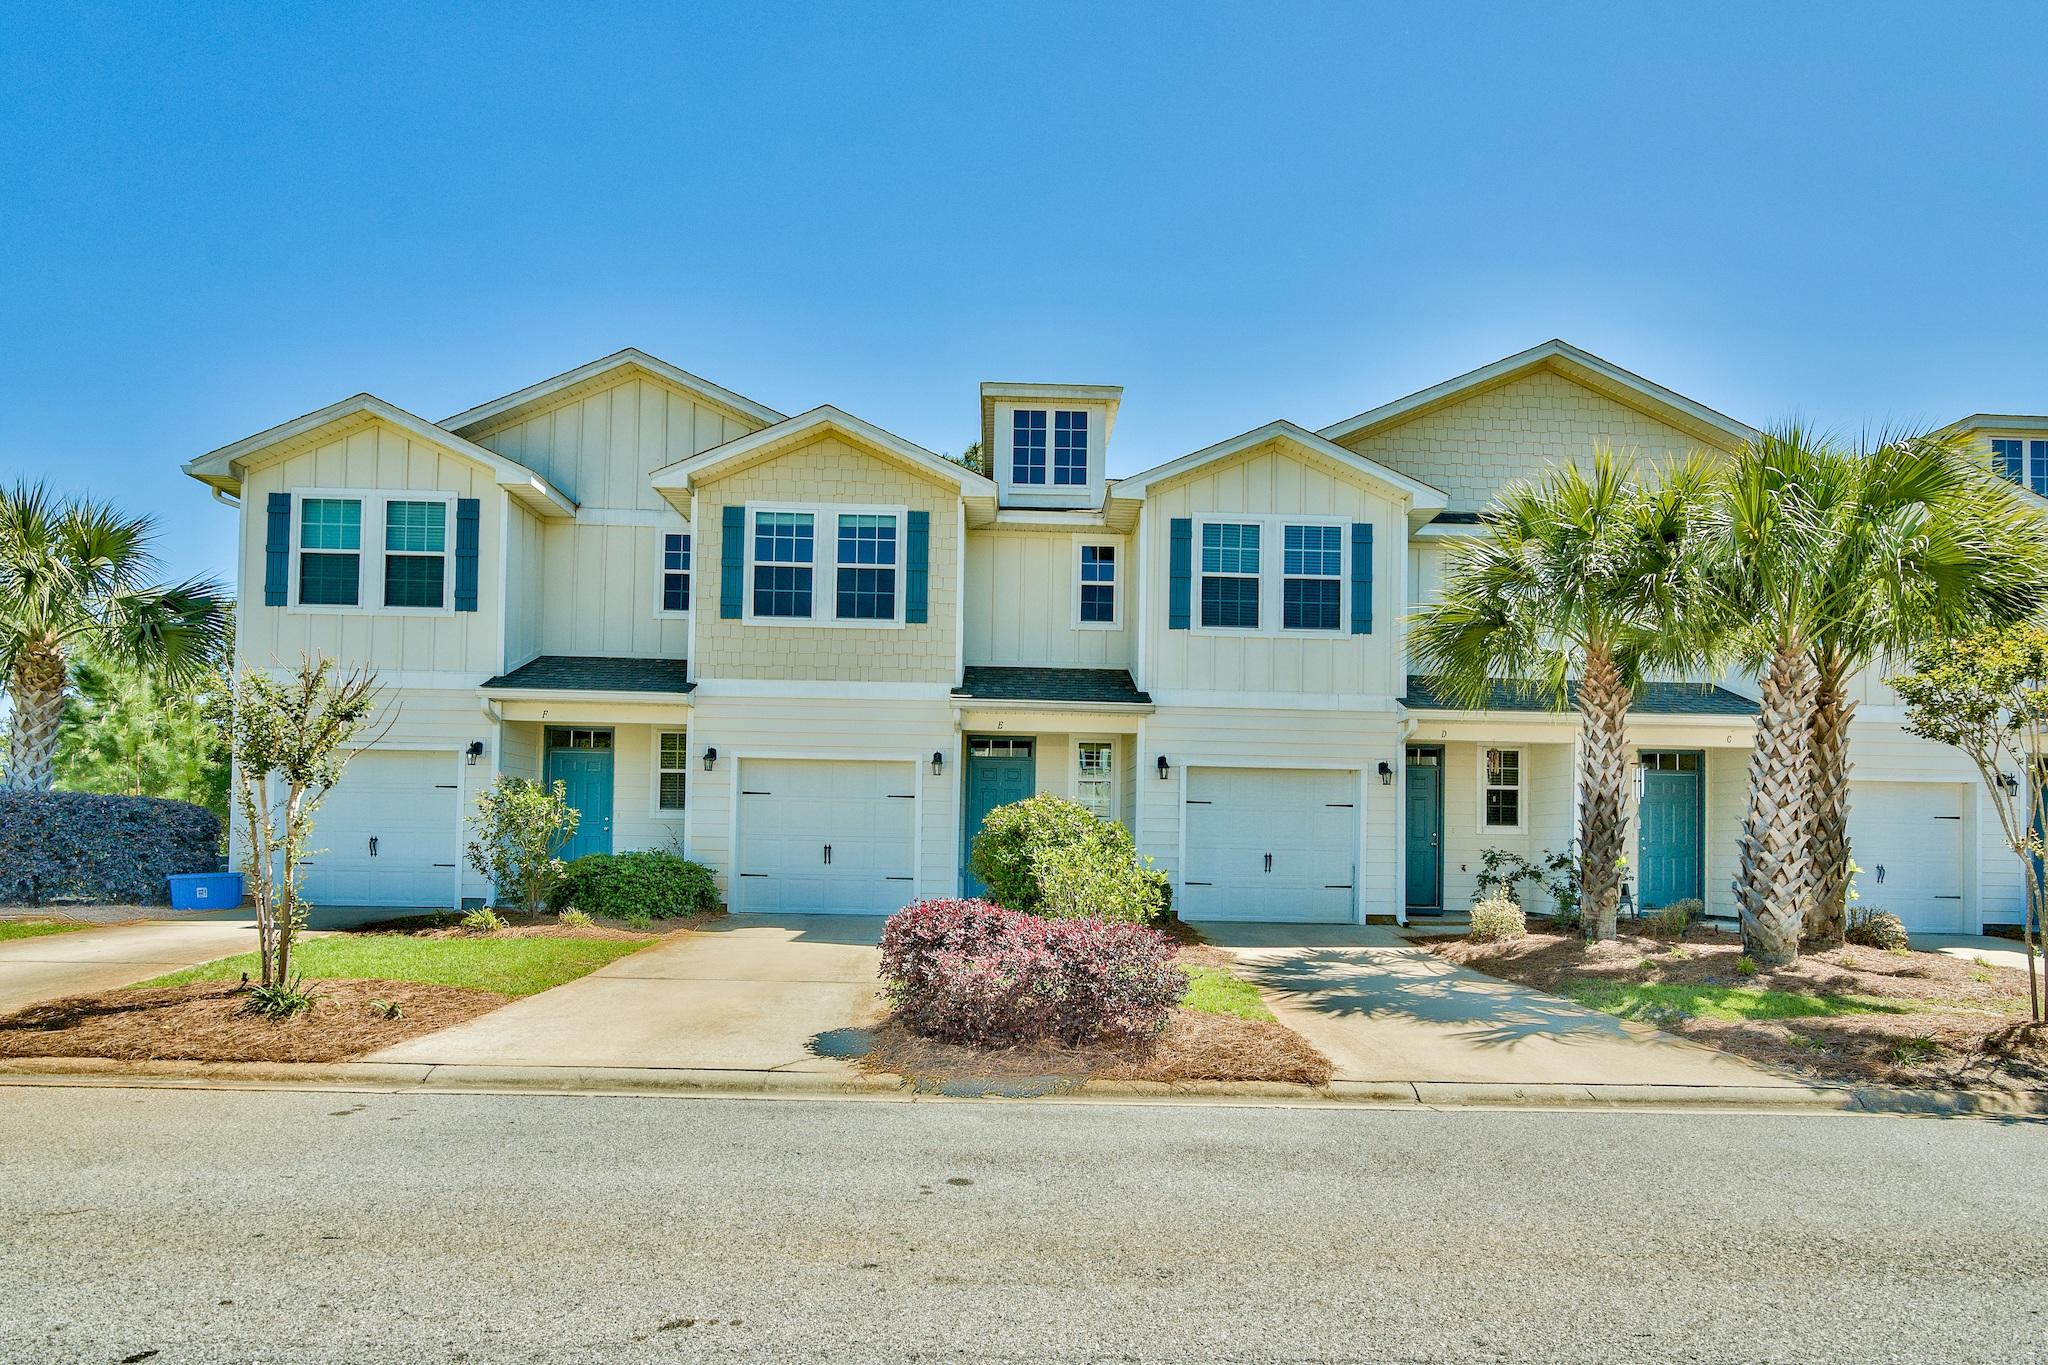 Whether you're looking for a starter home, beach retreat and/or investment property, be sure to take a look at this ideally located home. Located just a mile from South Walton's beautiful beaches and scenic Highway 30A, this three bedroom, 2.5 bath townhouse is only five years old and boasts new paint and new carpet throughout. You will love the social qualities of the kitchen, dining and living room as well as a half bath on the main floor. Upstairs, you will find a large master with a walk-in closet and updated master bathroom. Two more bedrooms and another full bathroom are a perfect size for your family and/or guests to share. Investors will love the rental possibilities and low maintenance. No more than a 5 to 10 minute drive from everything 30A has to offer as well as Sandestin's beaches and resorts, come by and see this amazing deal today!